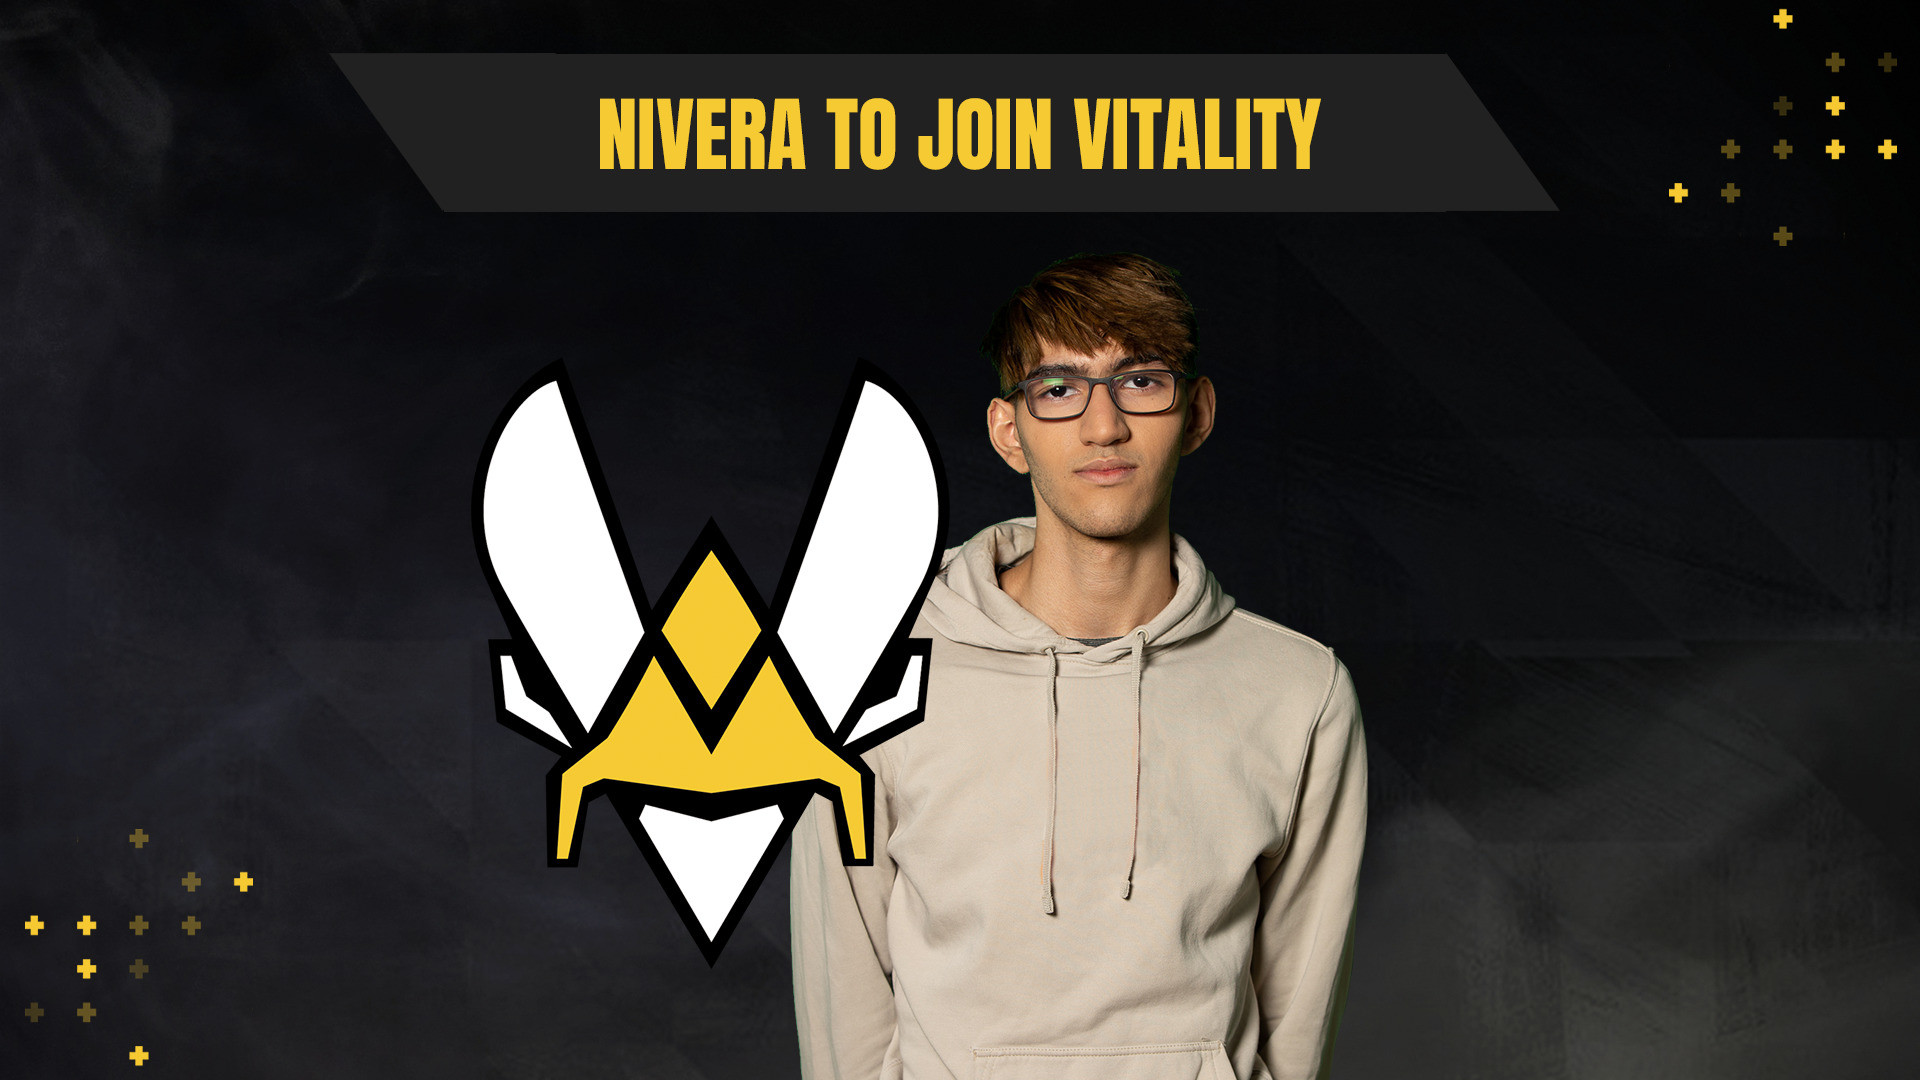 Nivera to join Vitality